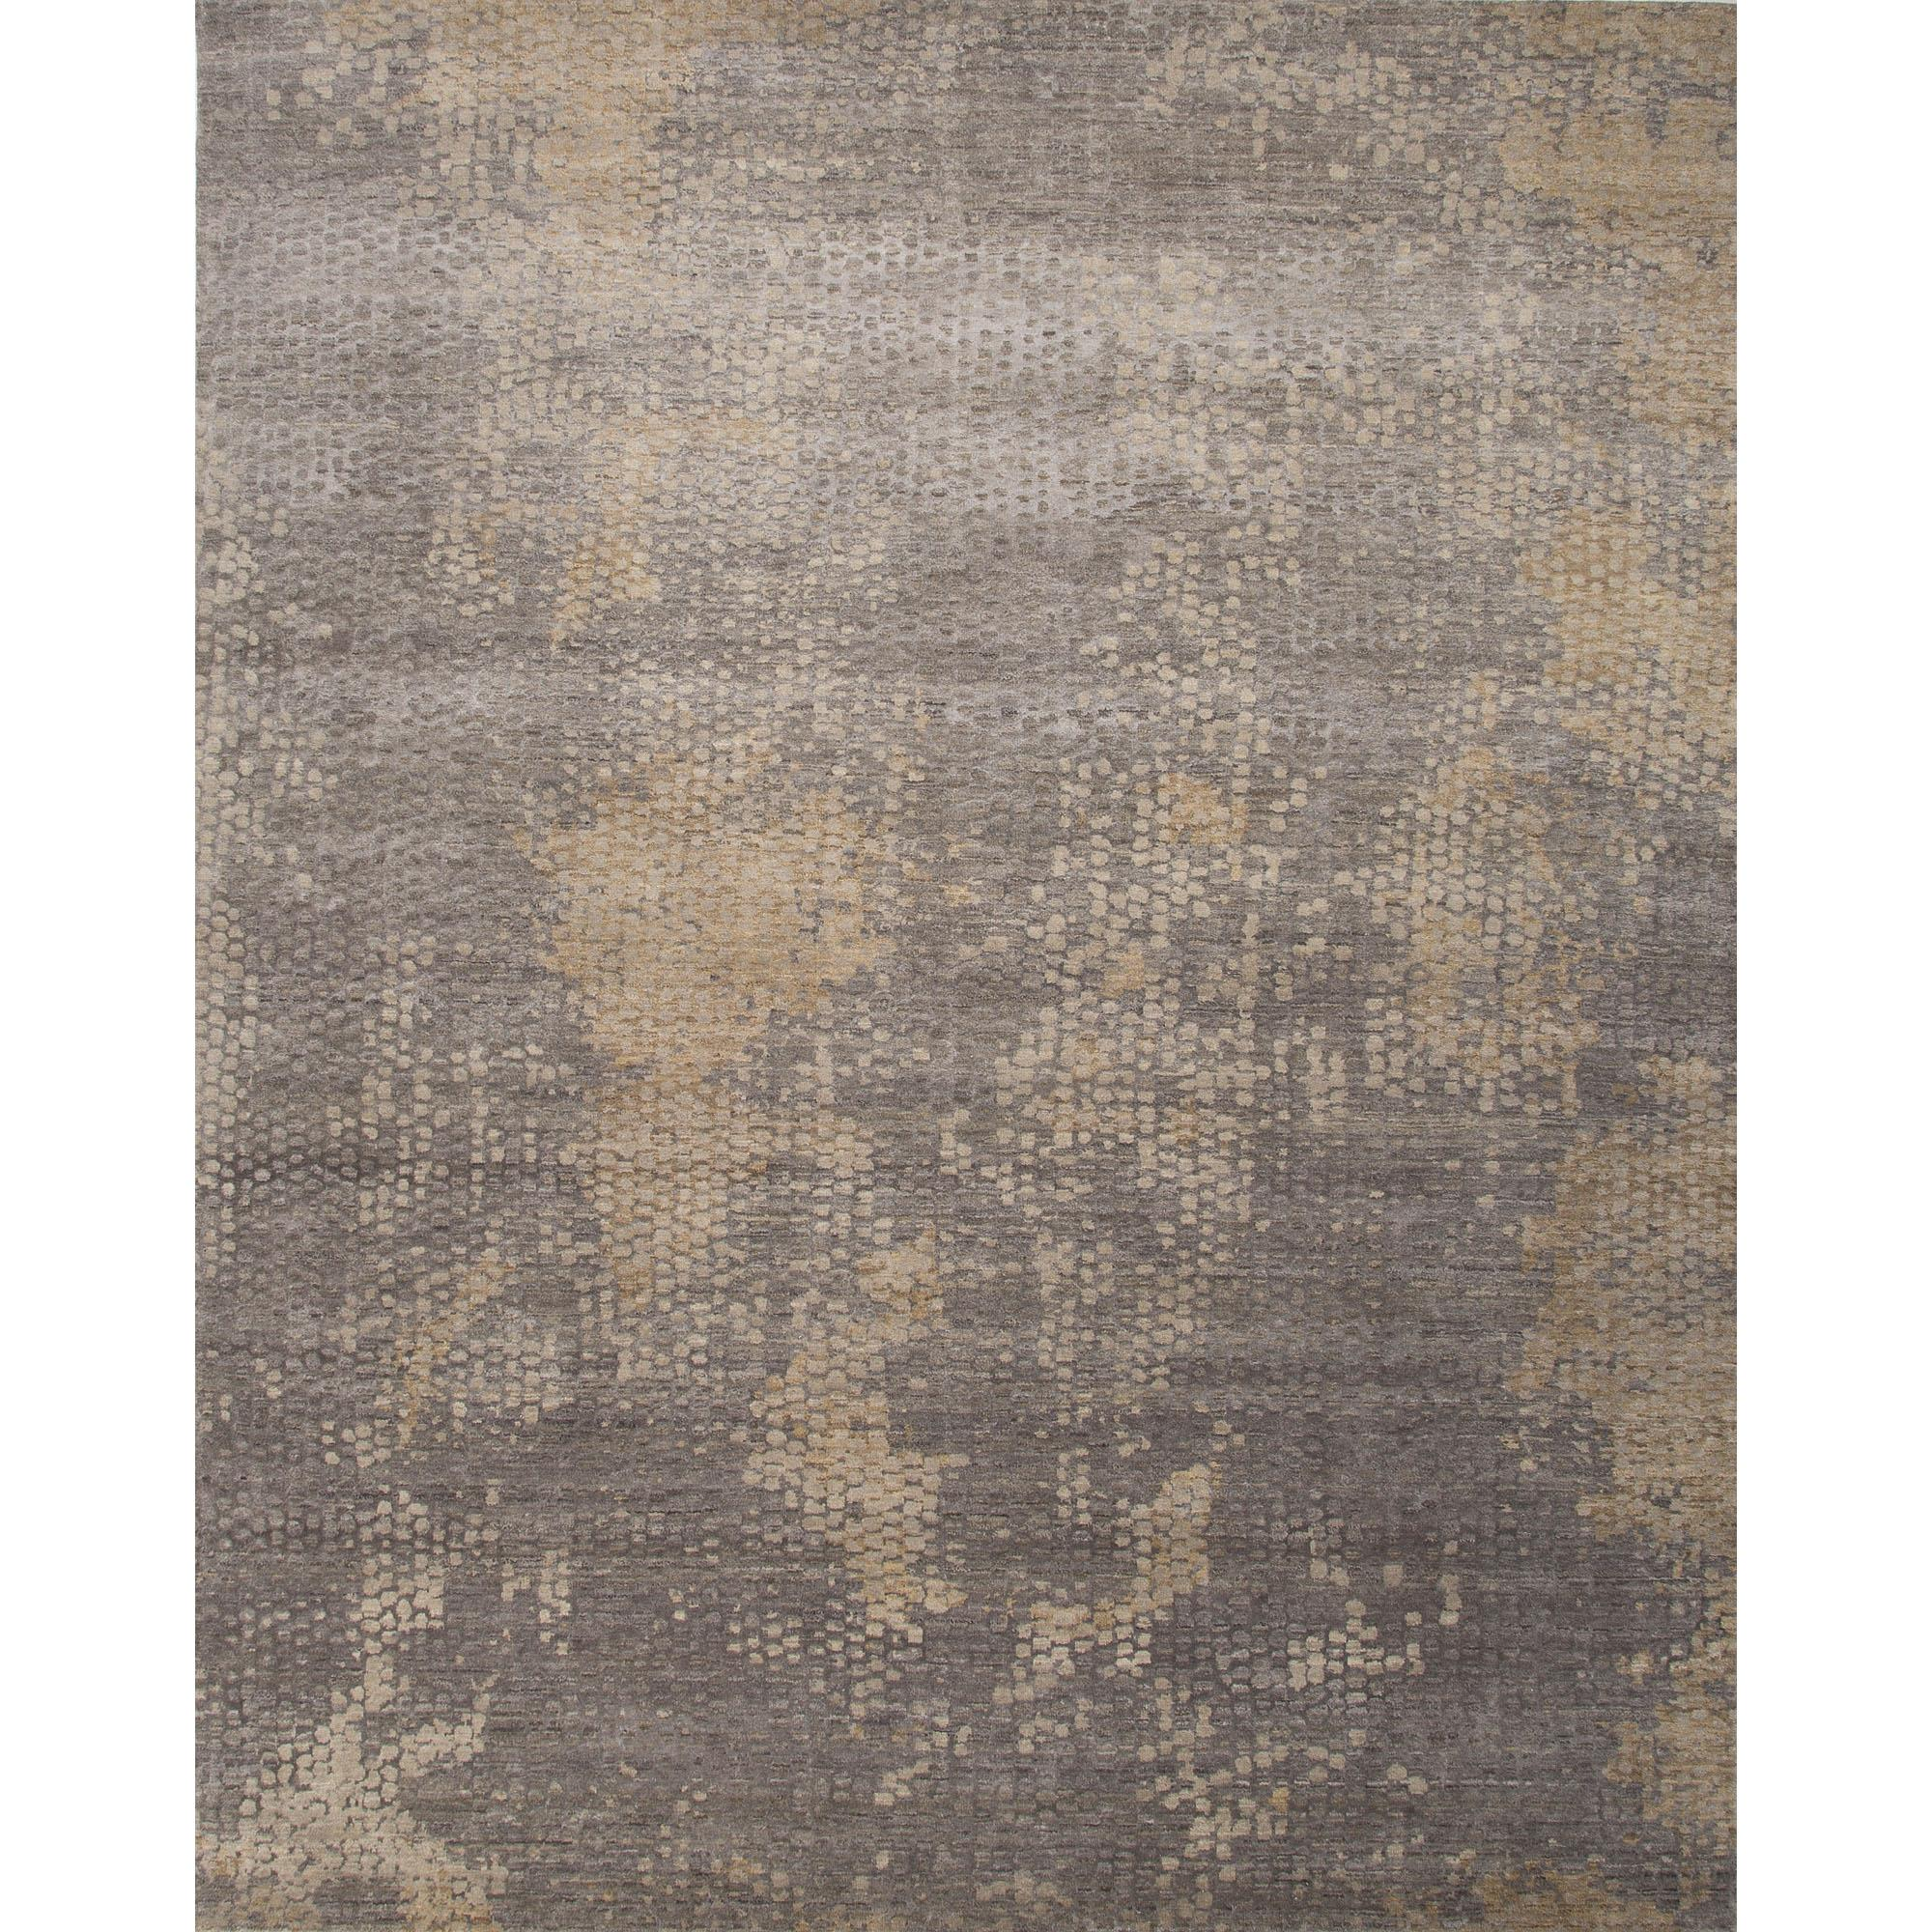 Chaos Theory By Kavi 10 x 14 Rug by JAIPUR Living at Jacksonville Furniture Mart